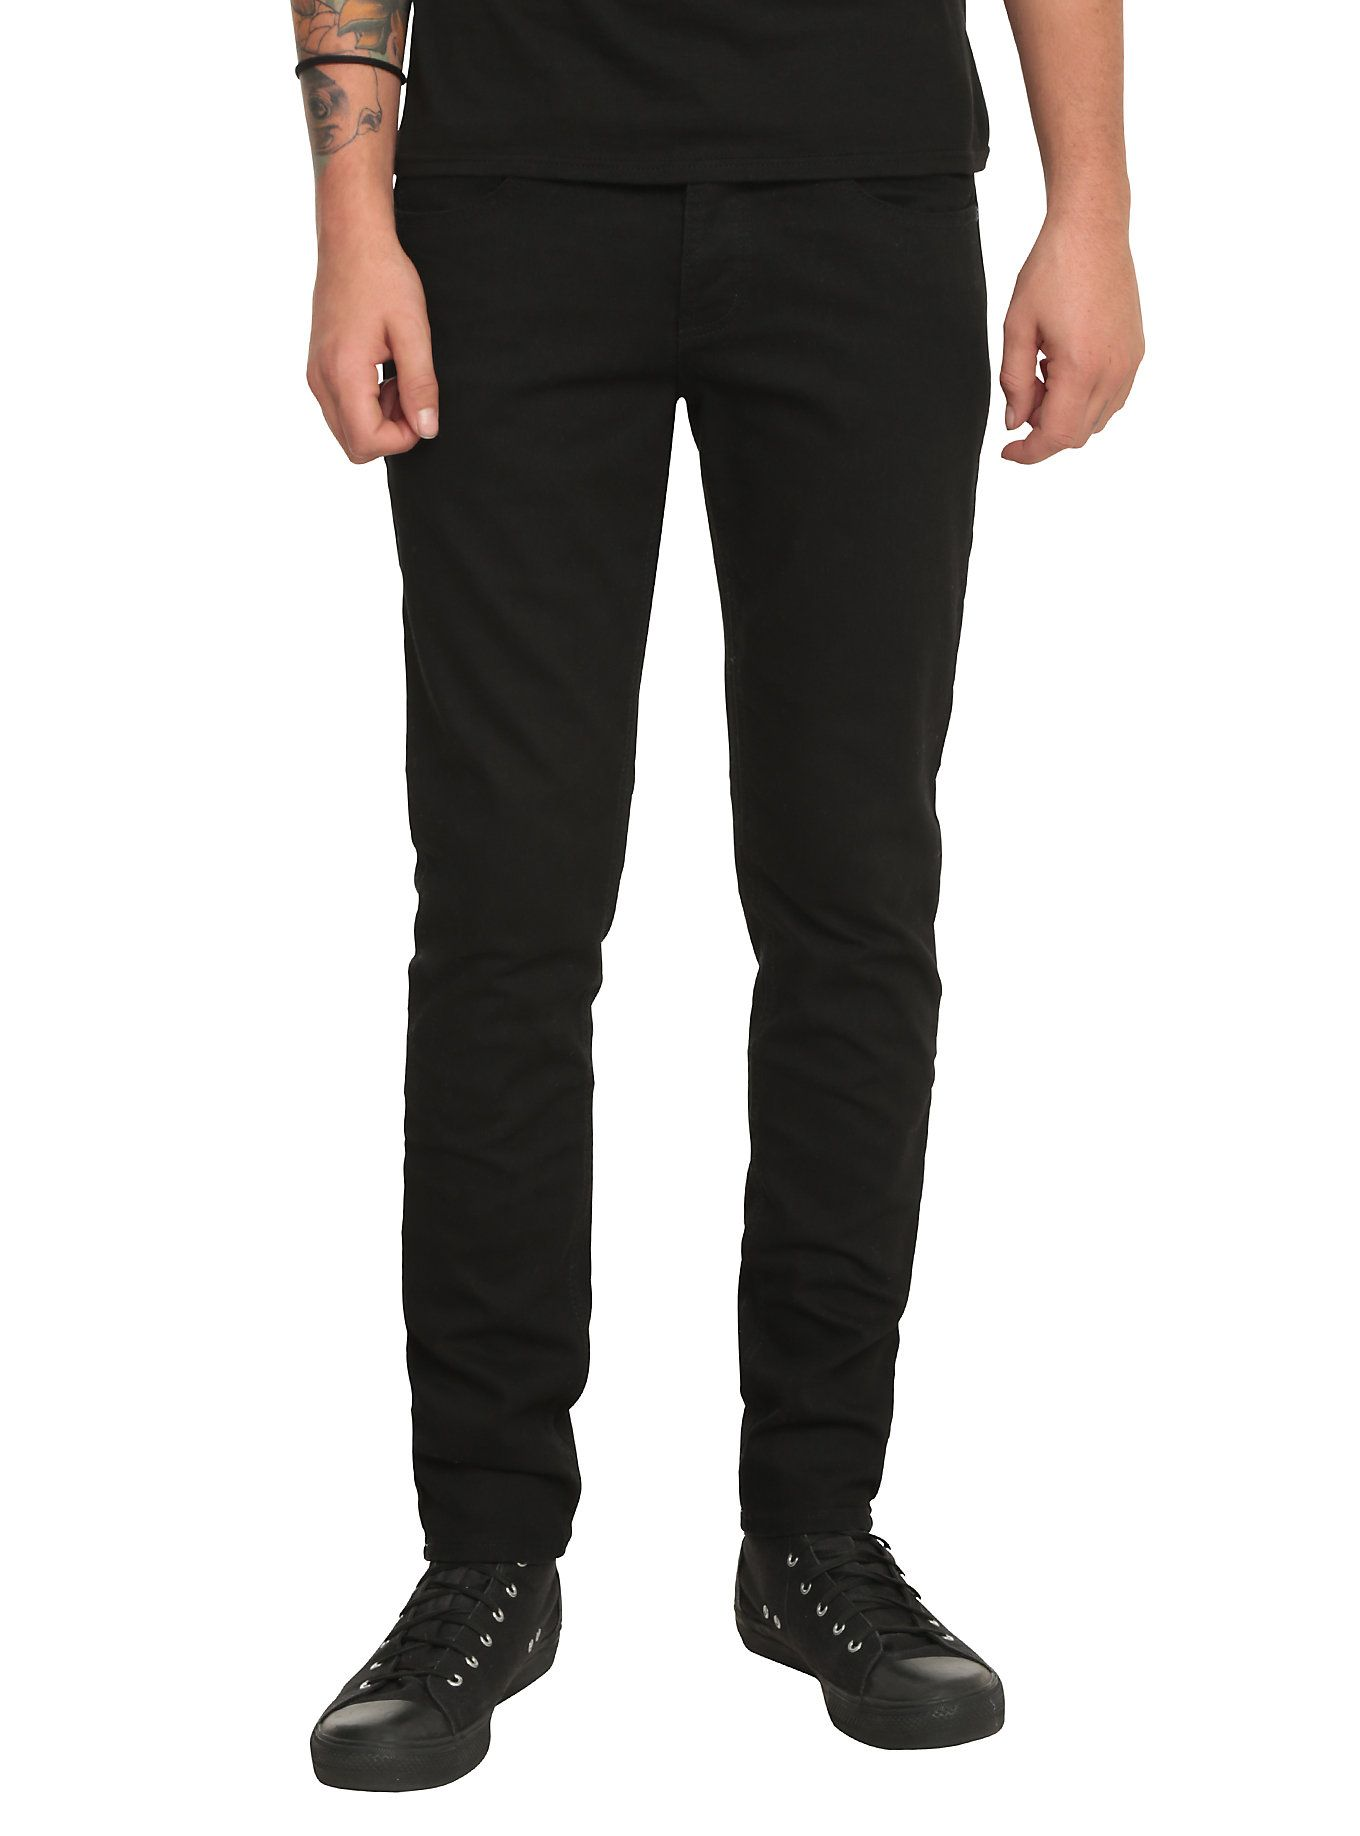 Faded Black Skinny Jeans Men - Xtellar Jeans